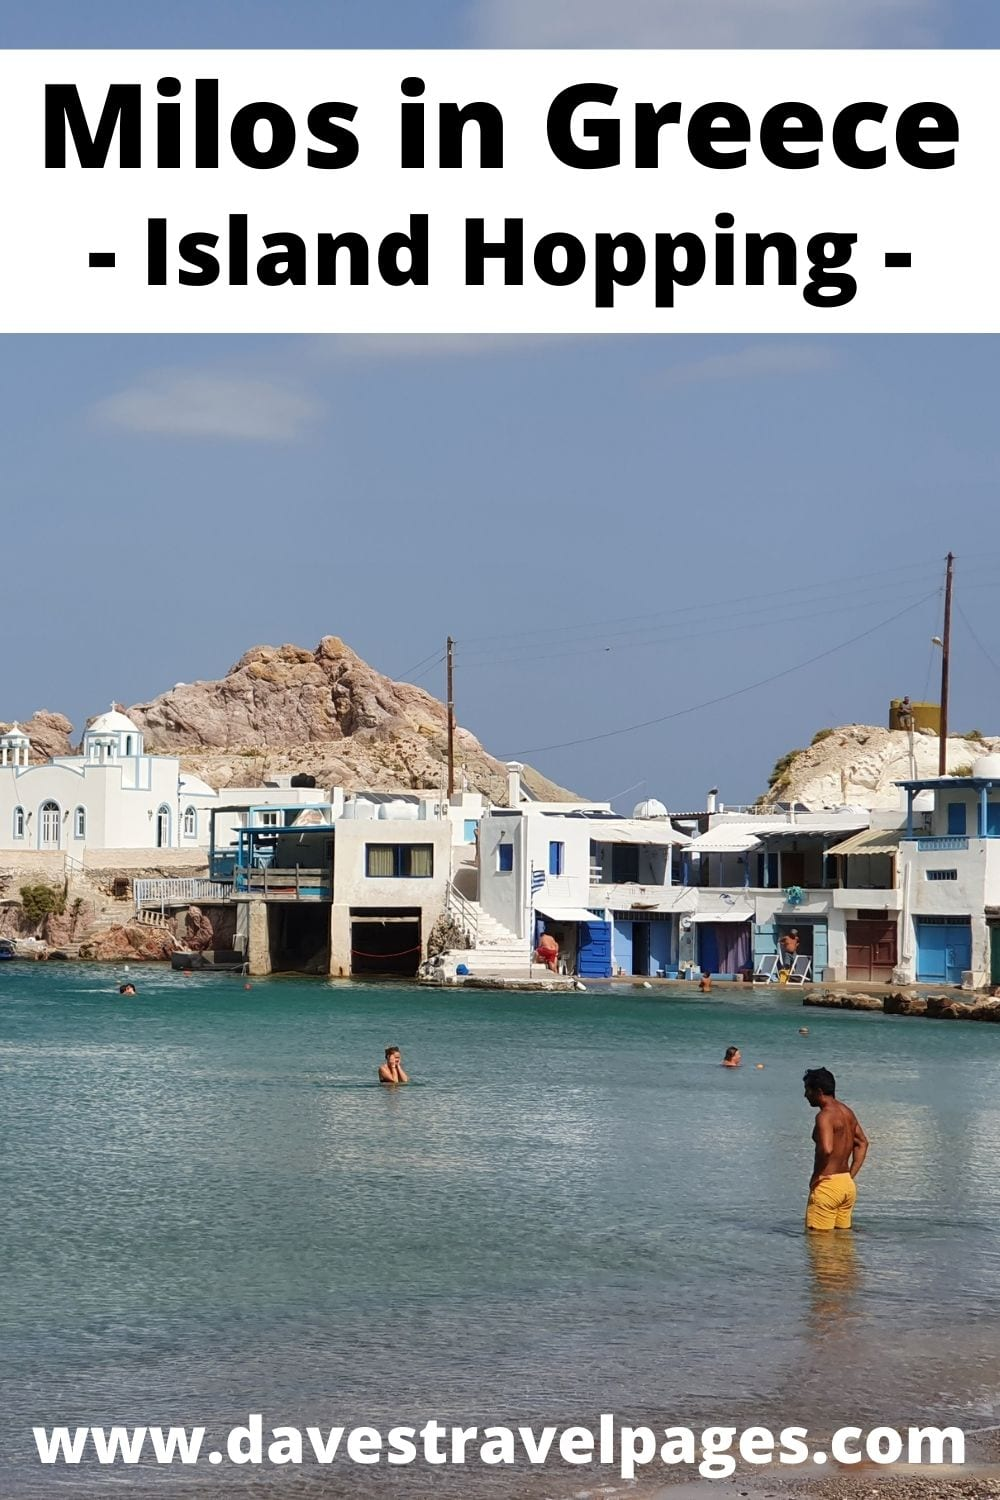 Island hopping from Naxos to Milos in Greece